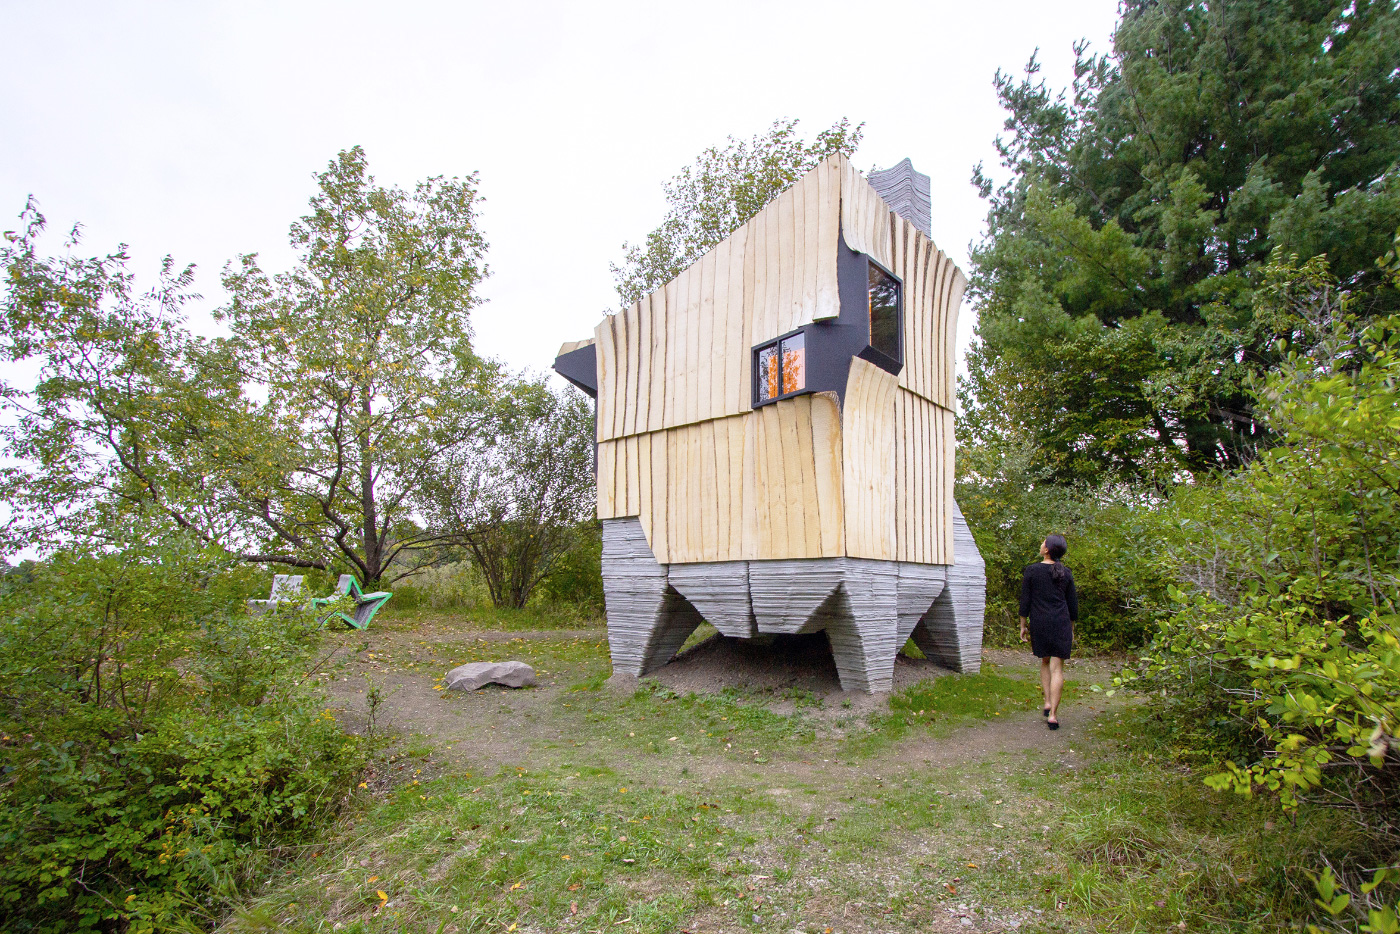 Looking at Ashen Cabin, concrete on the bottom and slivered wood facade up top